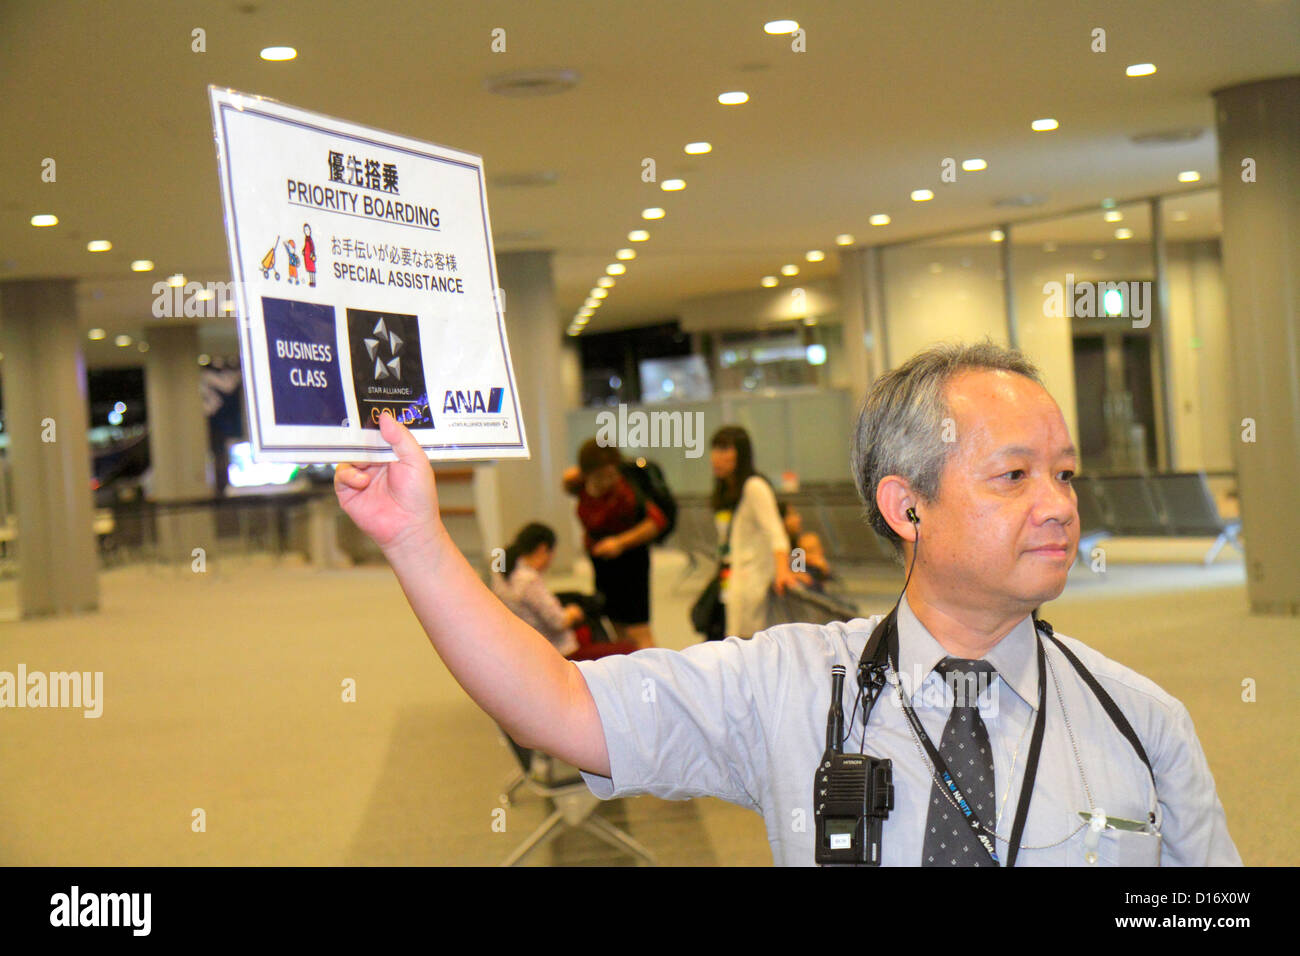 Tokyo Japan Narita International Airport NRT gate area concourse ANA Al Nippon Airways Asian man uniform holding - Stock Image